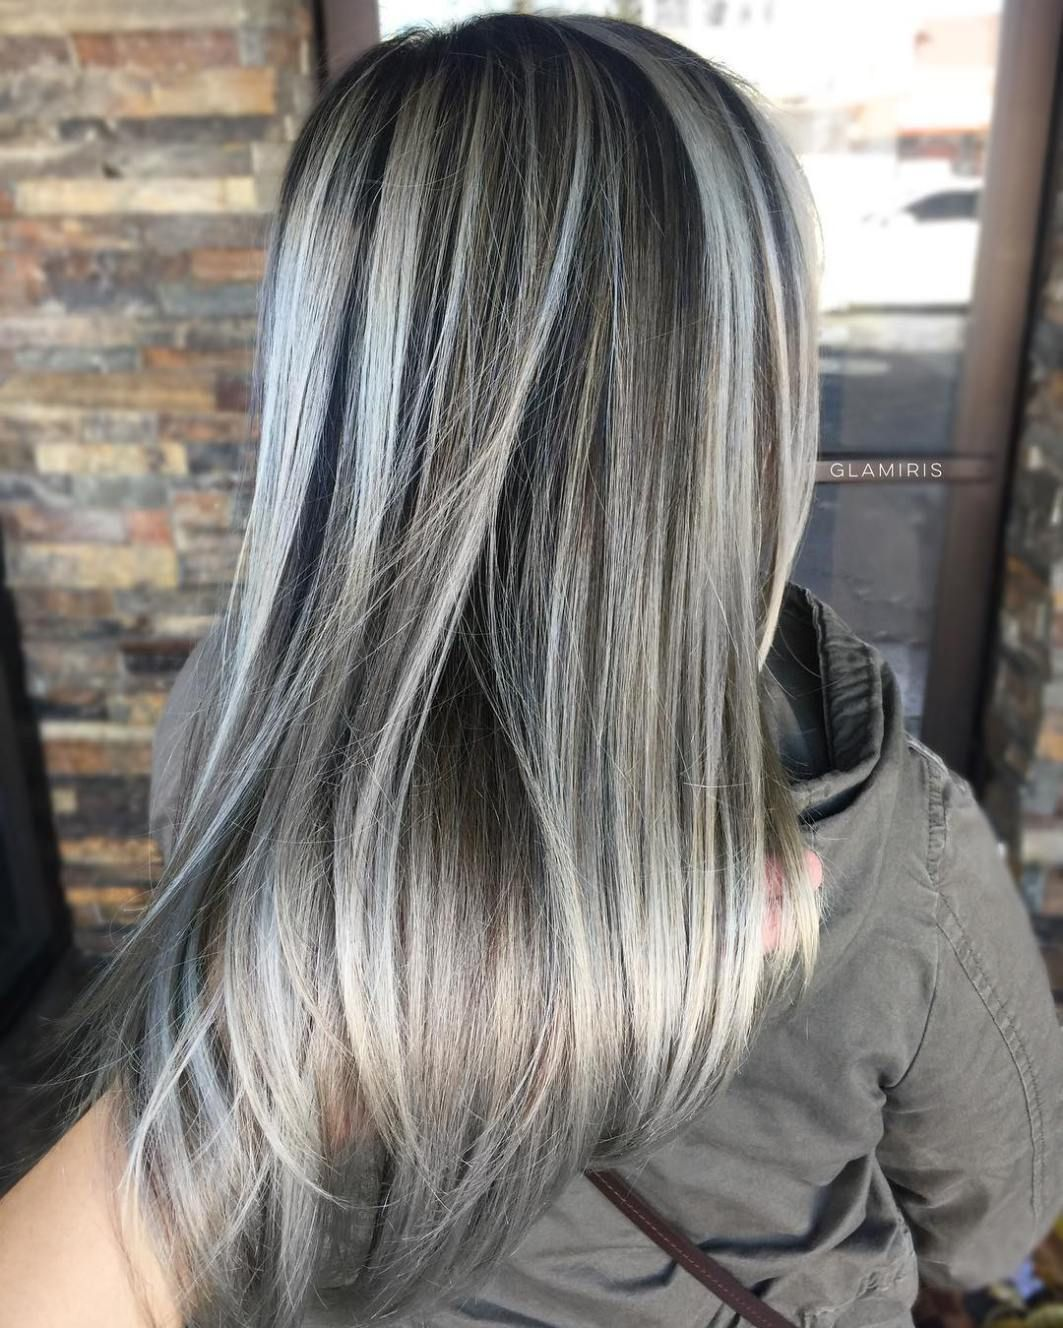 60 Shades Of Grey Silver And White Highlights For Eternal Youth Brown Hair With Ash Blonde Highlights Ash Blonde Highlights Ash Gray Hair Color